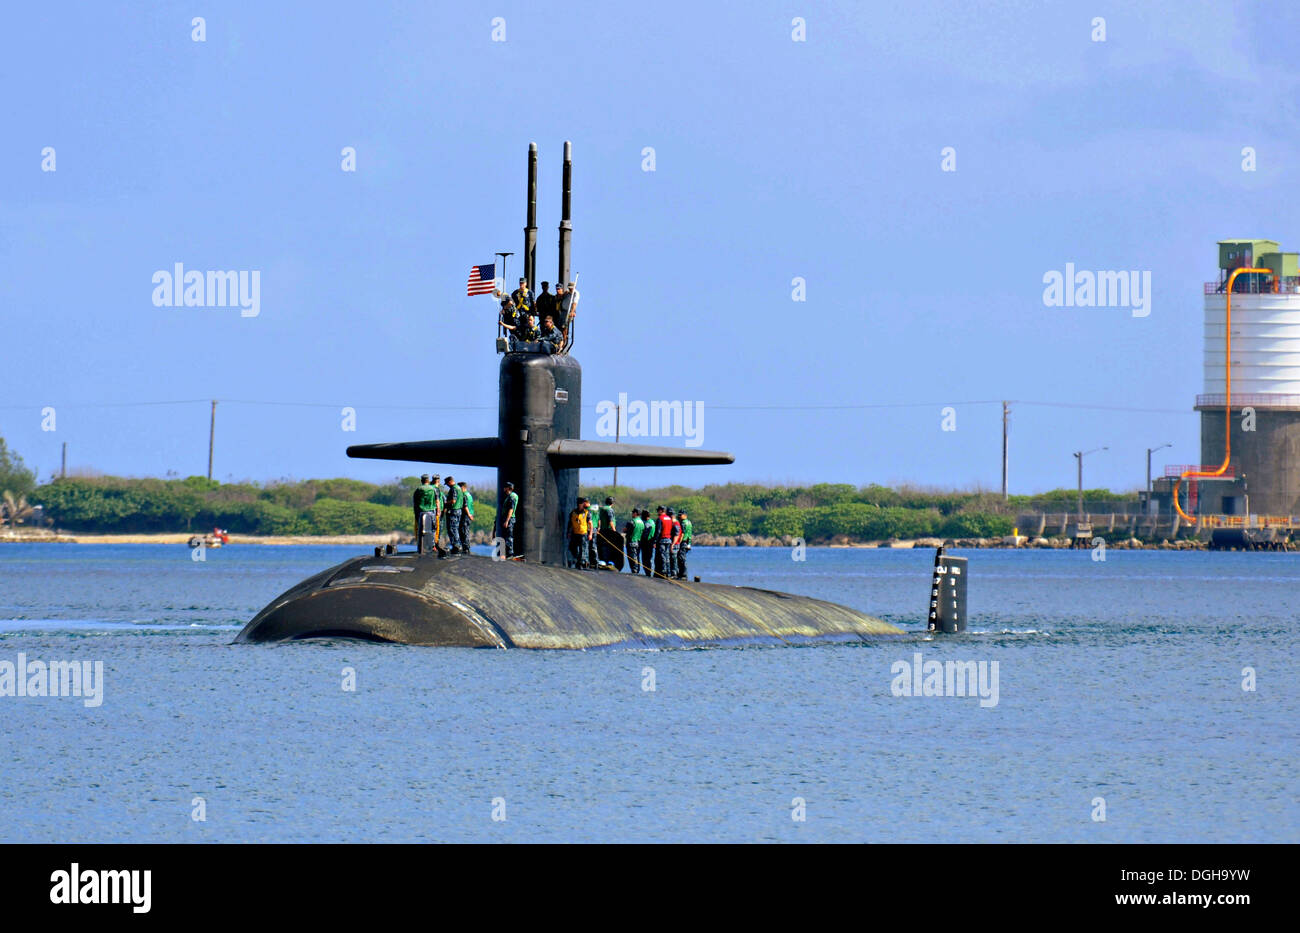 US Navy Los Angeles-class attack submarine USS Albuquerque arrives in Apra Harbor May 7, 2013 in Guam. - Stock Image